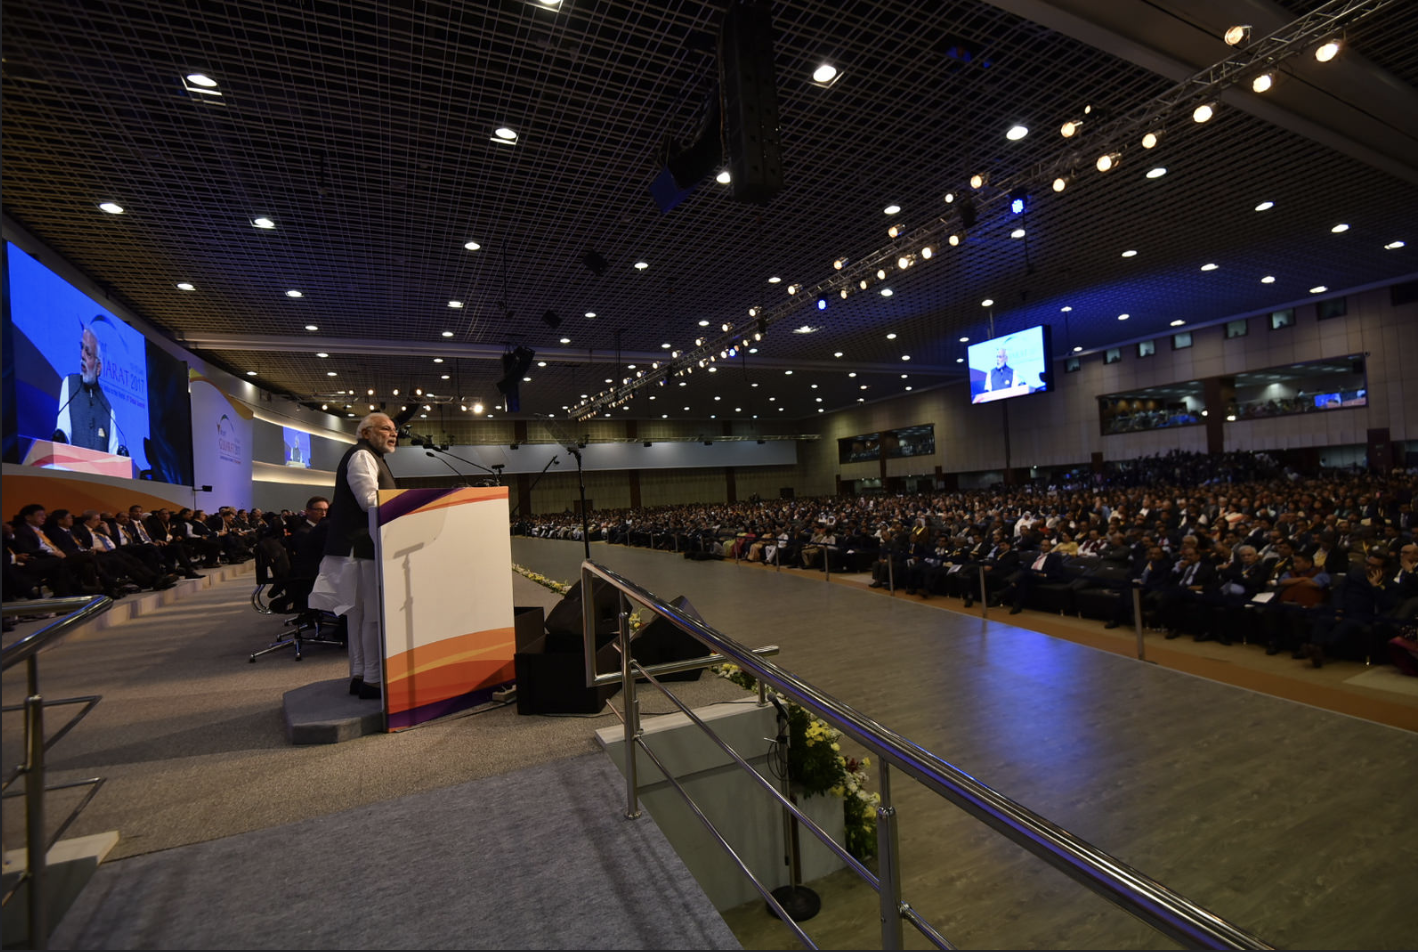 Prime Minister Narendra Modi at the Vibrant Gujarat Global Summit 2017, at Mahatma Mandir, in Gandhinagar, Gujarat on January 10, 2017 Photo courtesy: MEA